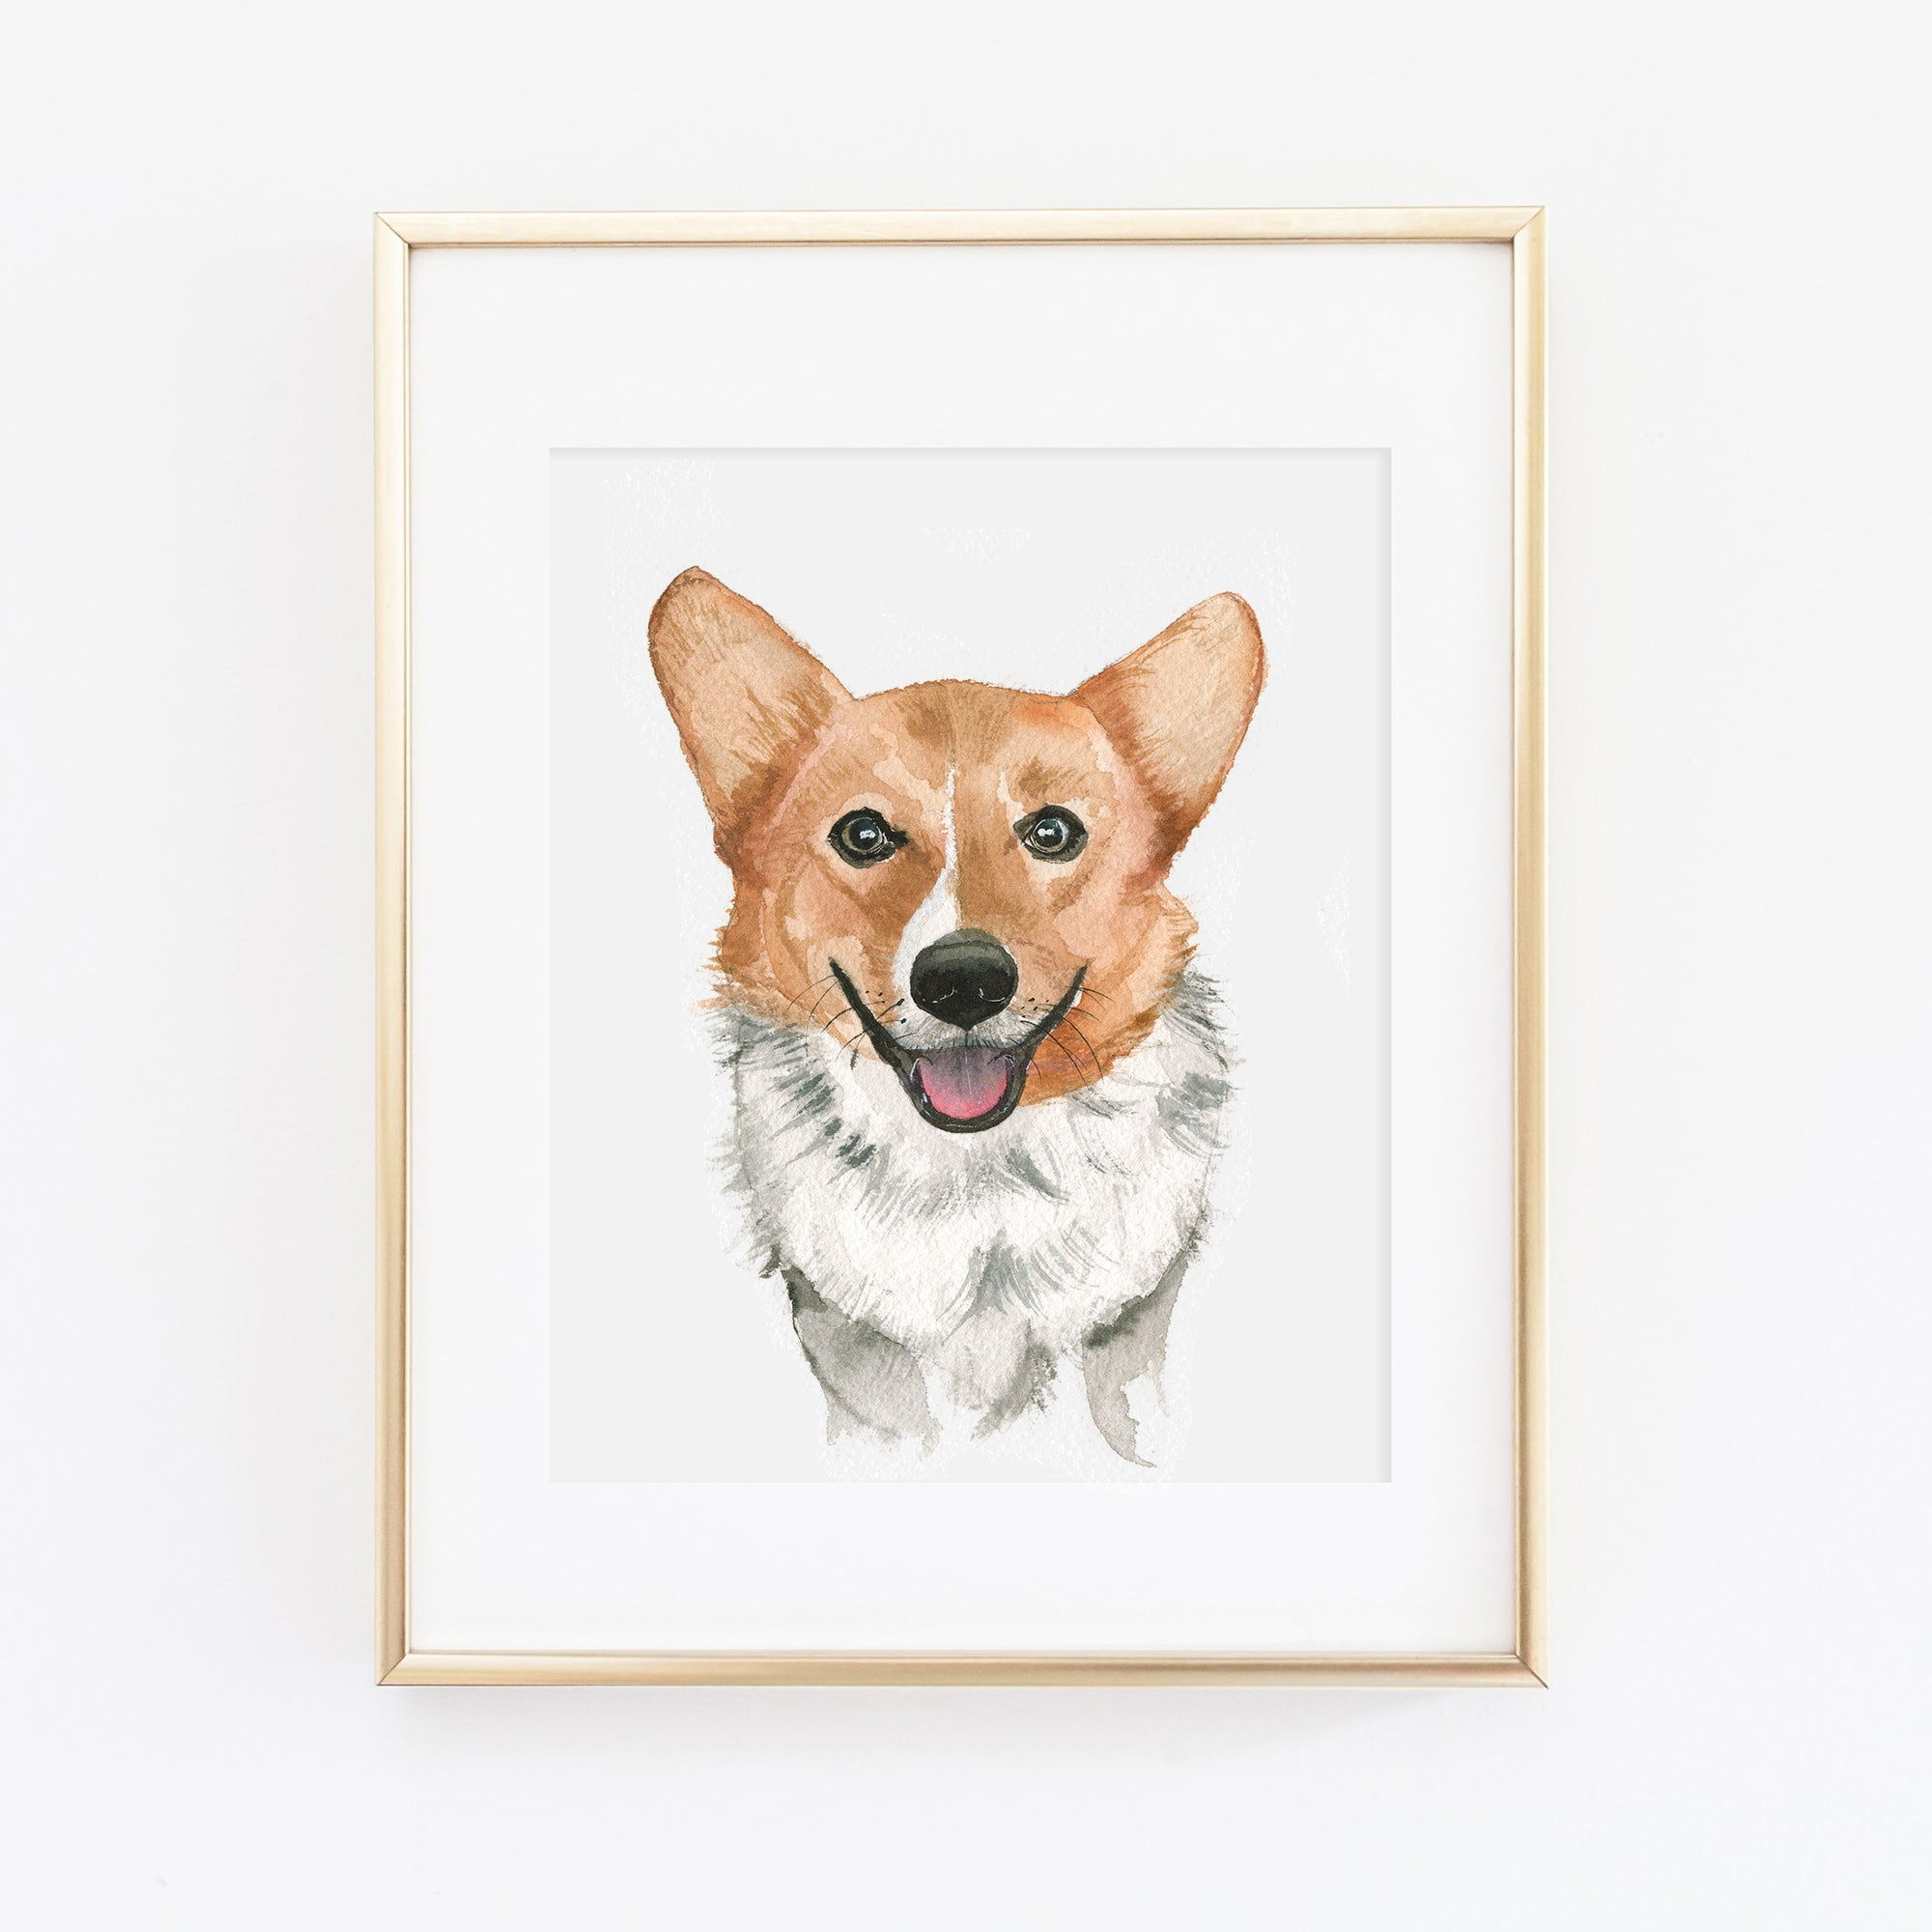 Corgi Dog Art Print - Tory